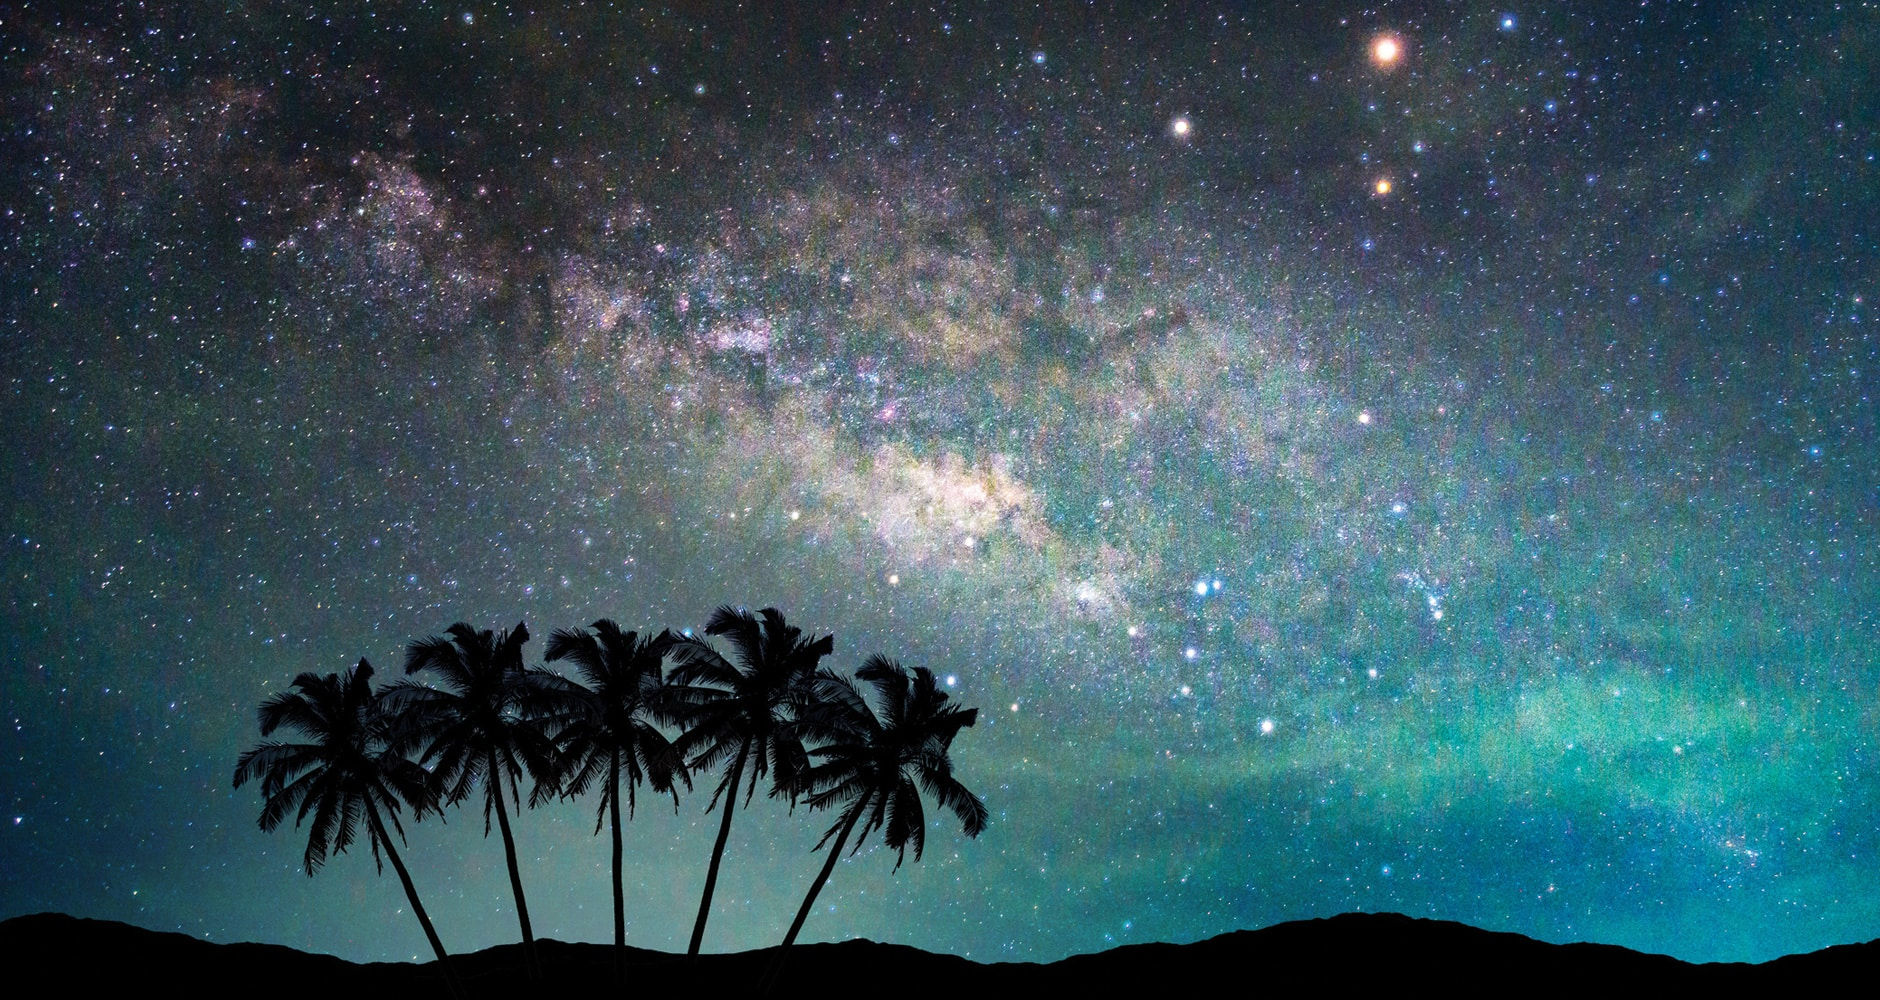 stars and the milky way in the night sky